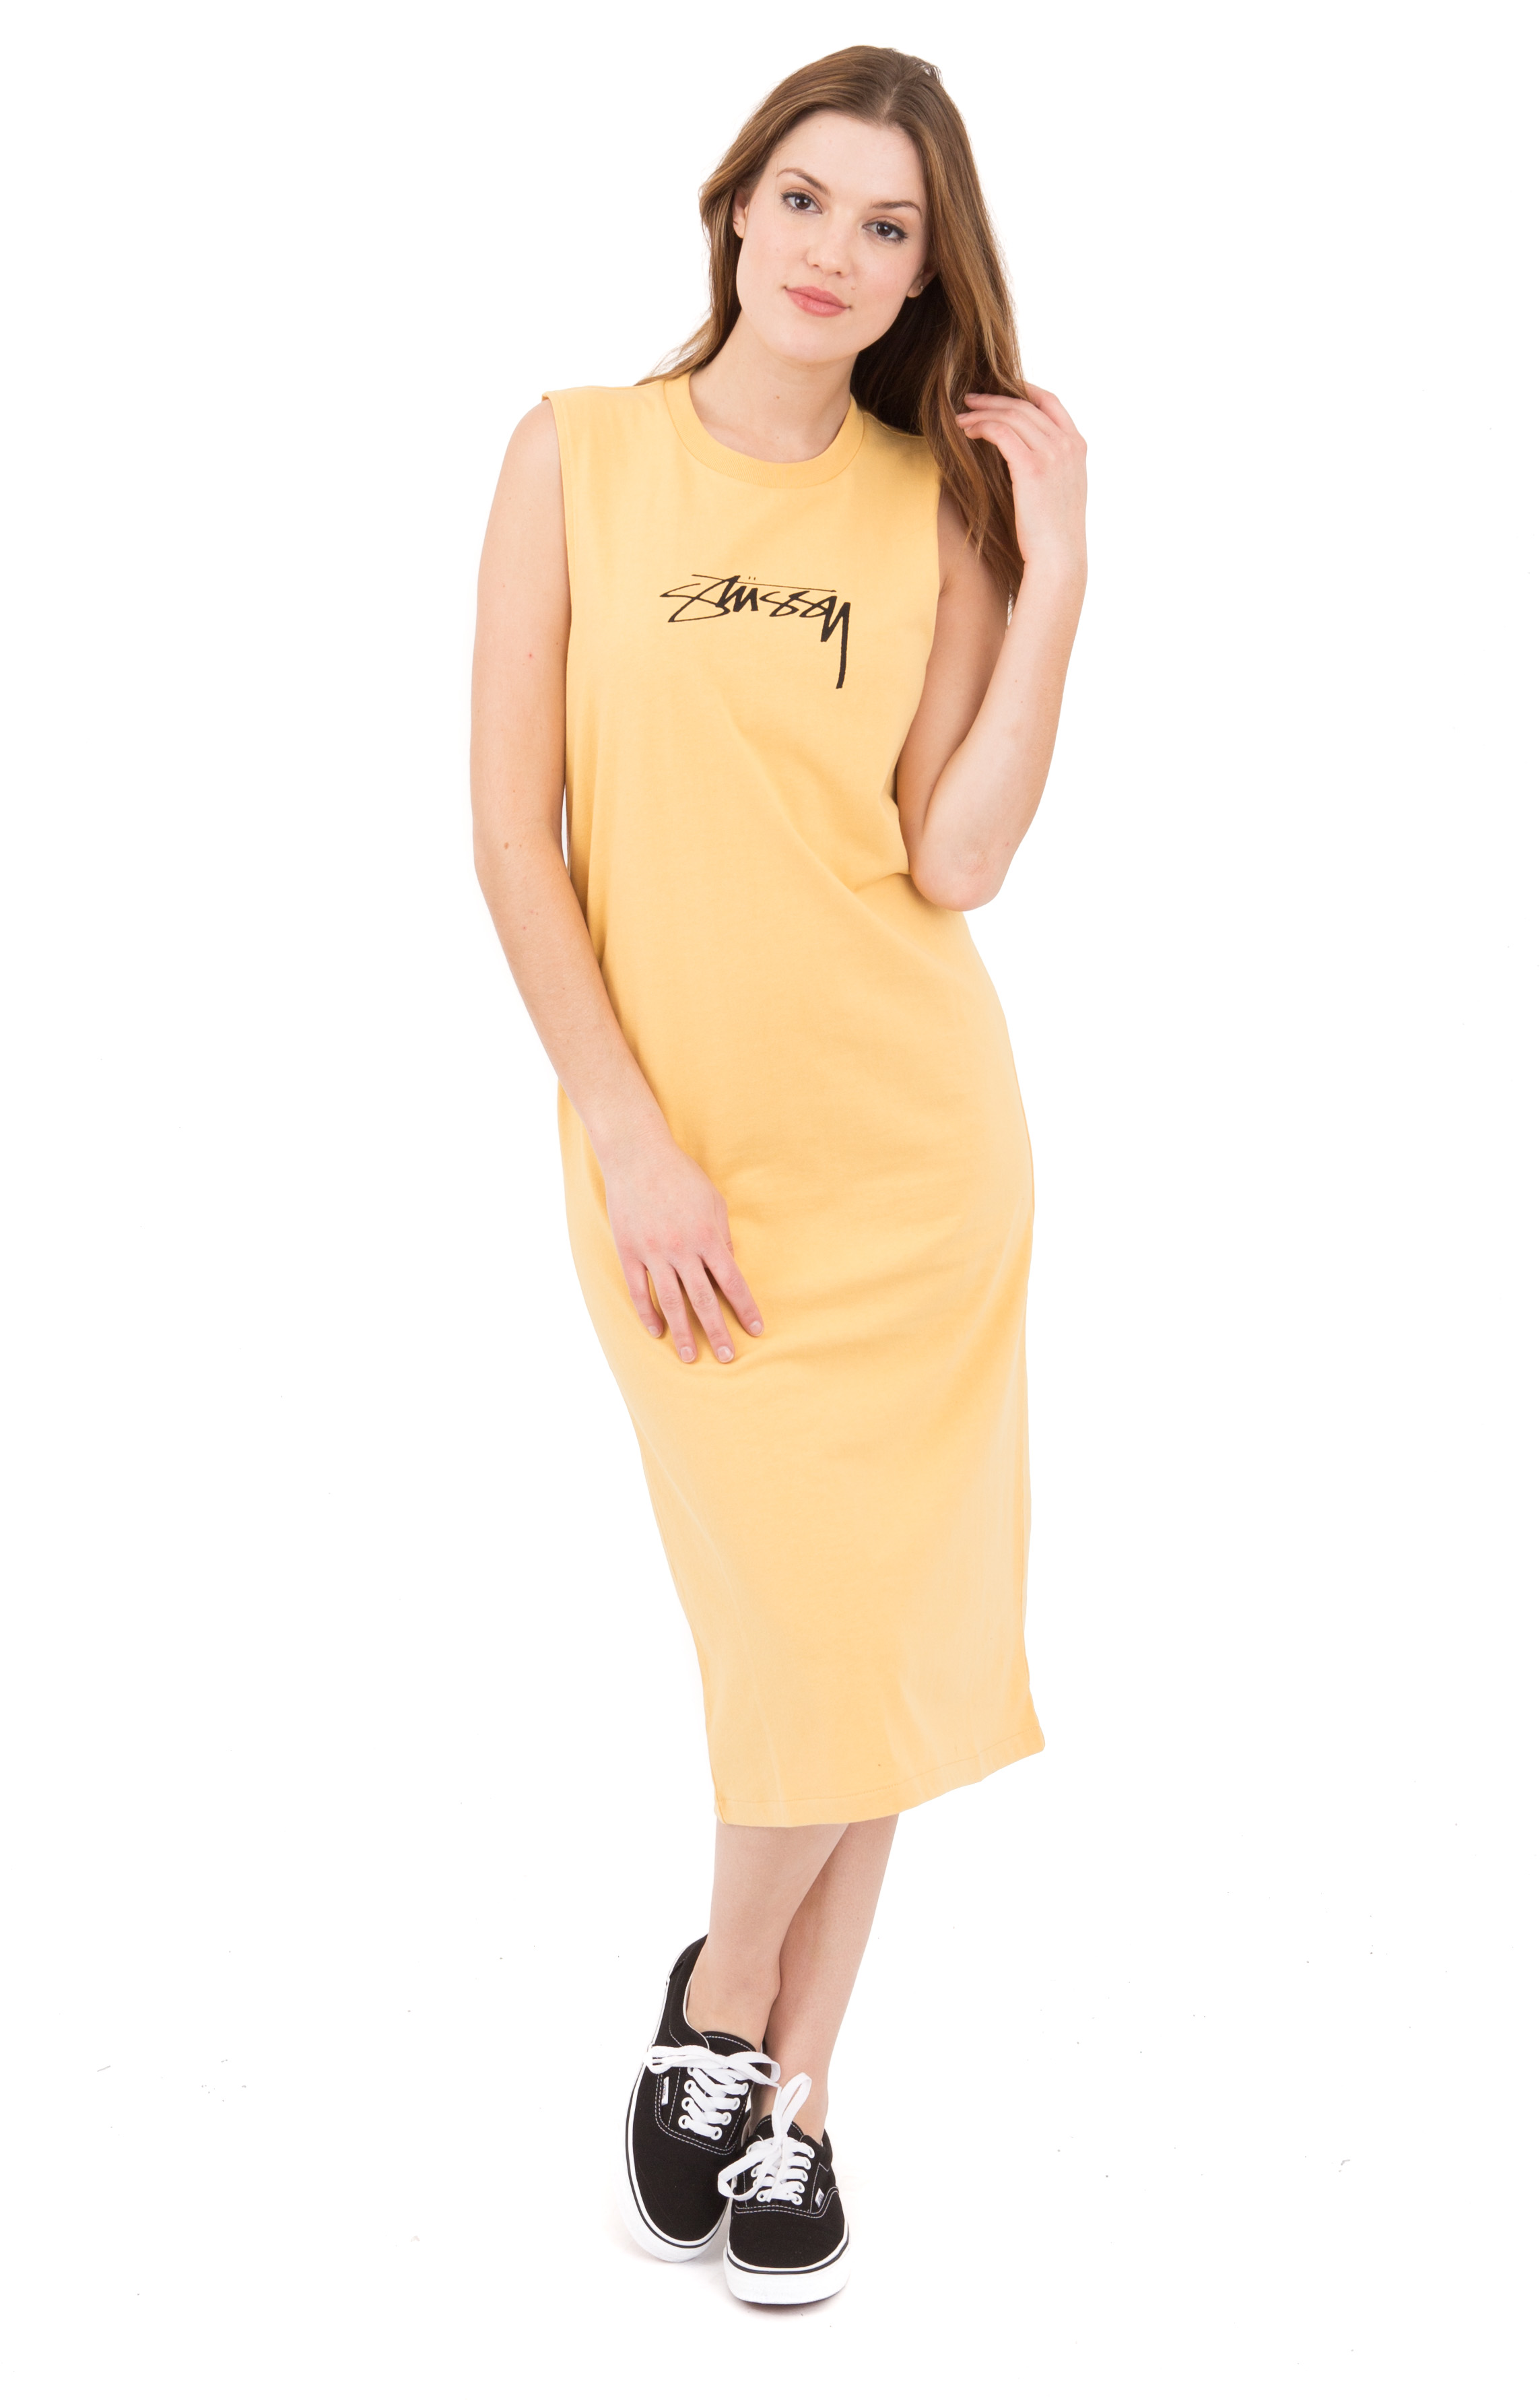 Ezra Muscle Dress - White Yellow